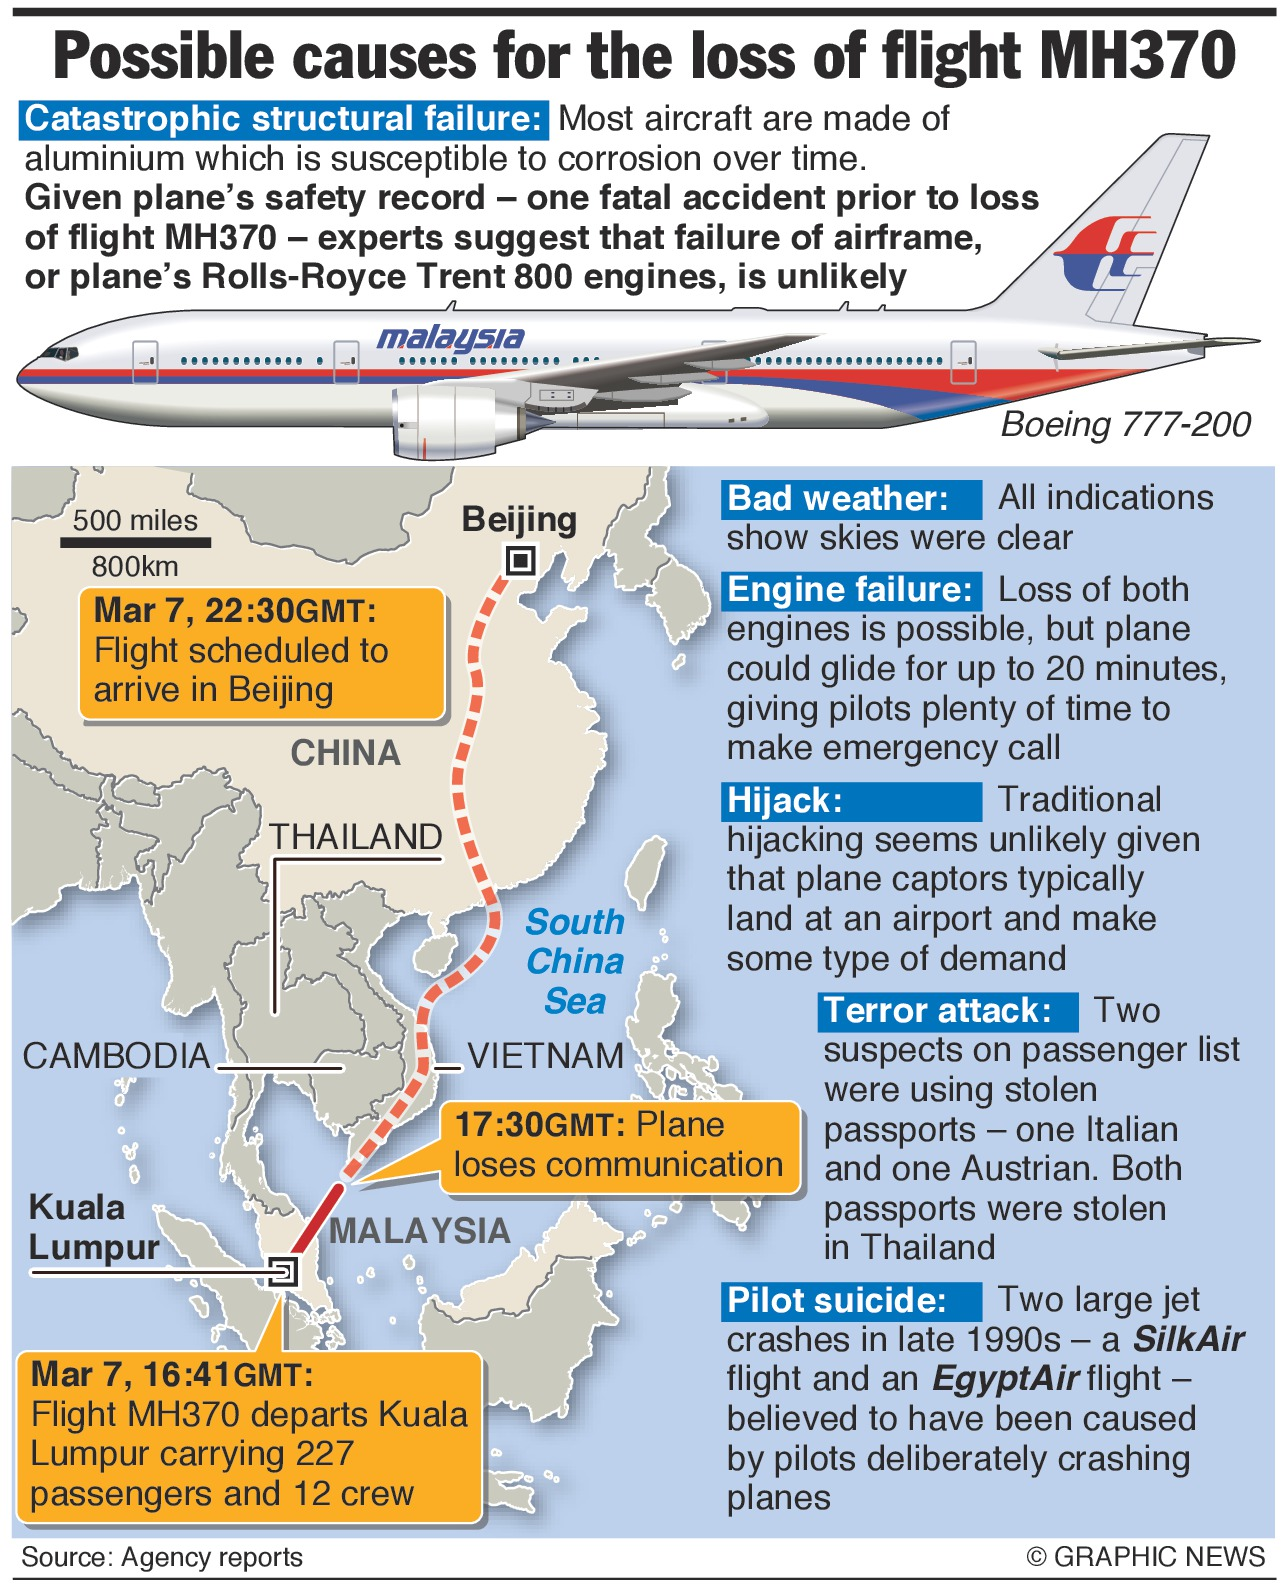 Malaysia: Infographics Related To Malaysia Airlines Flight MH370